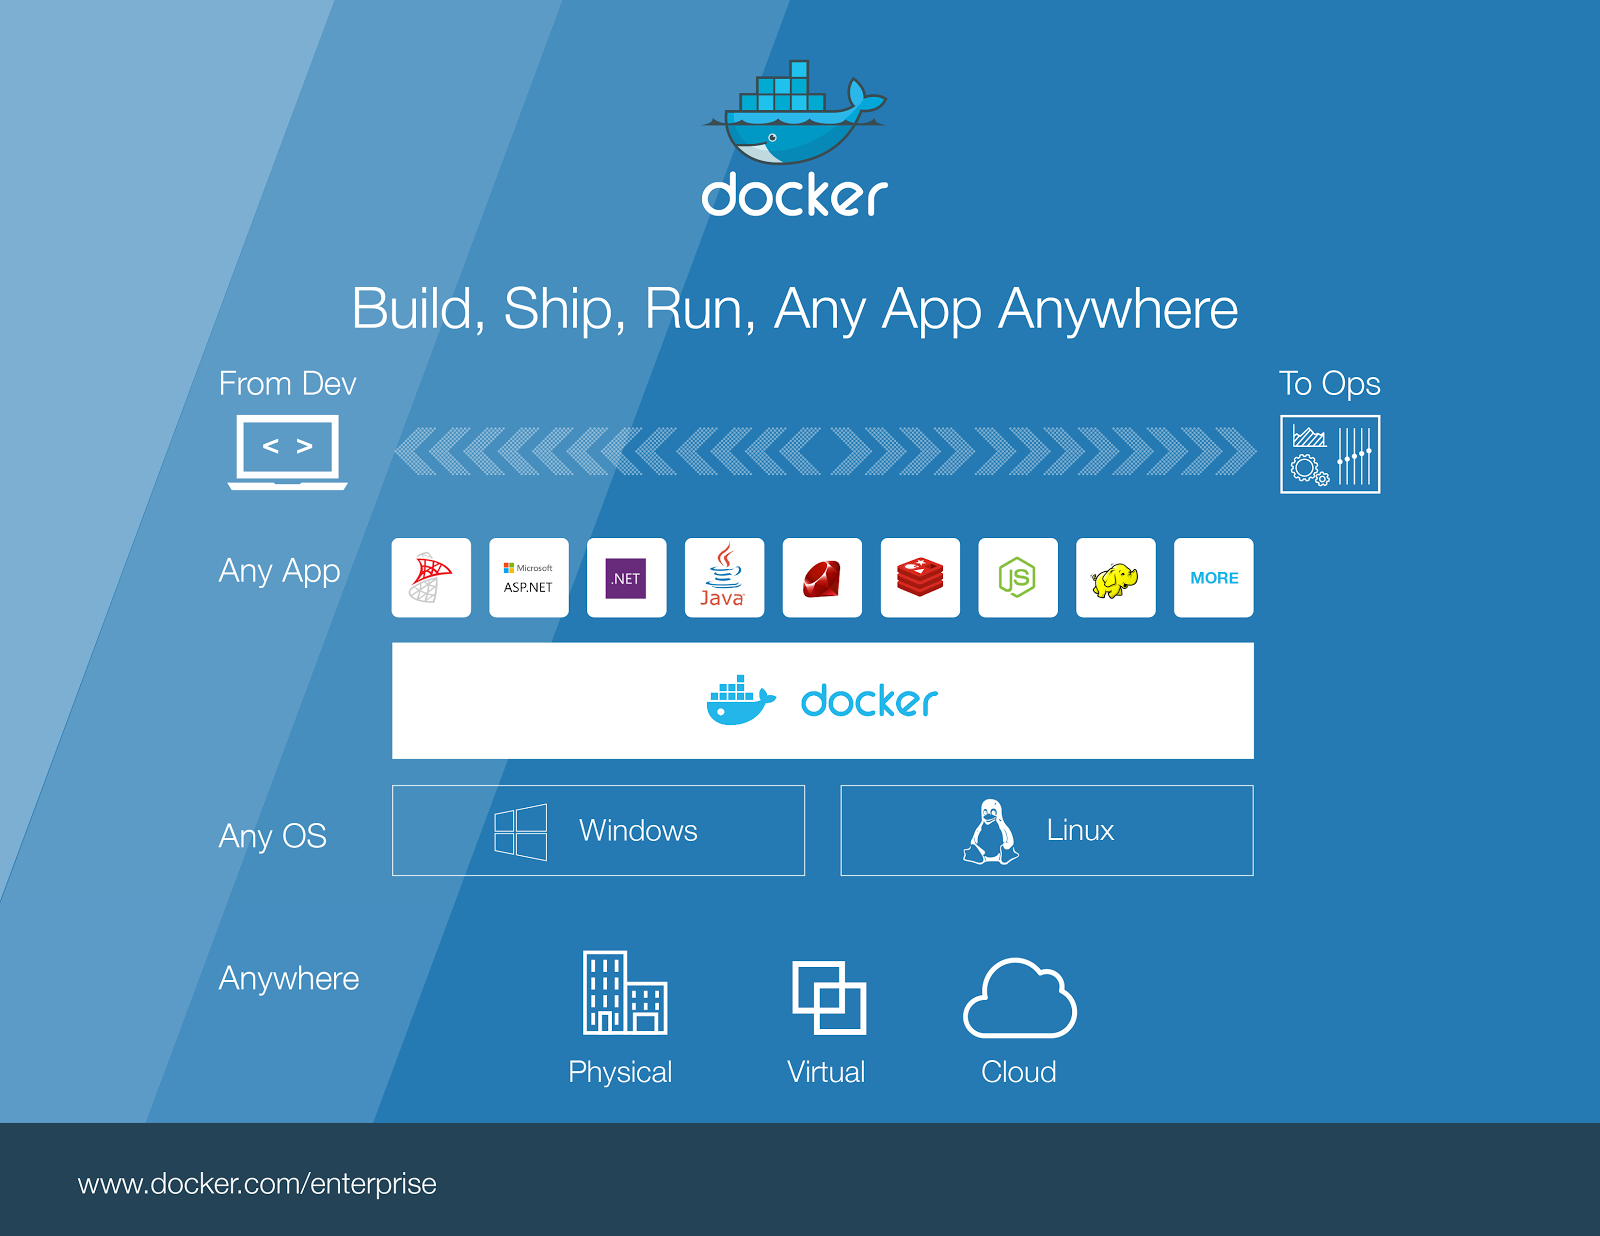 Introducing Docker for Windows Server 2016 - Docker Blog